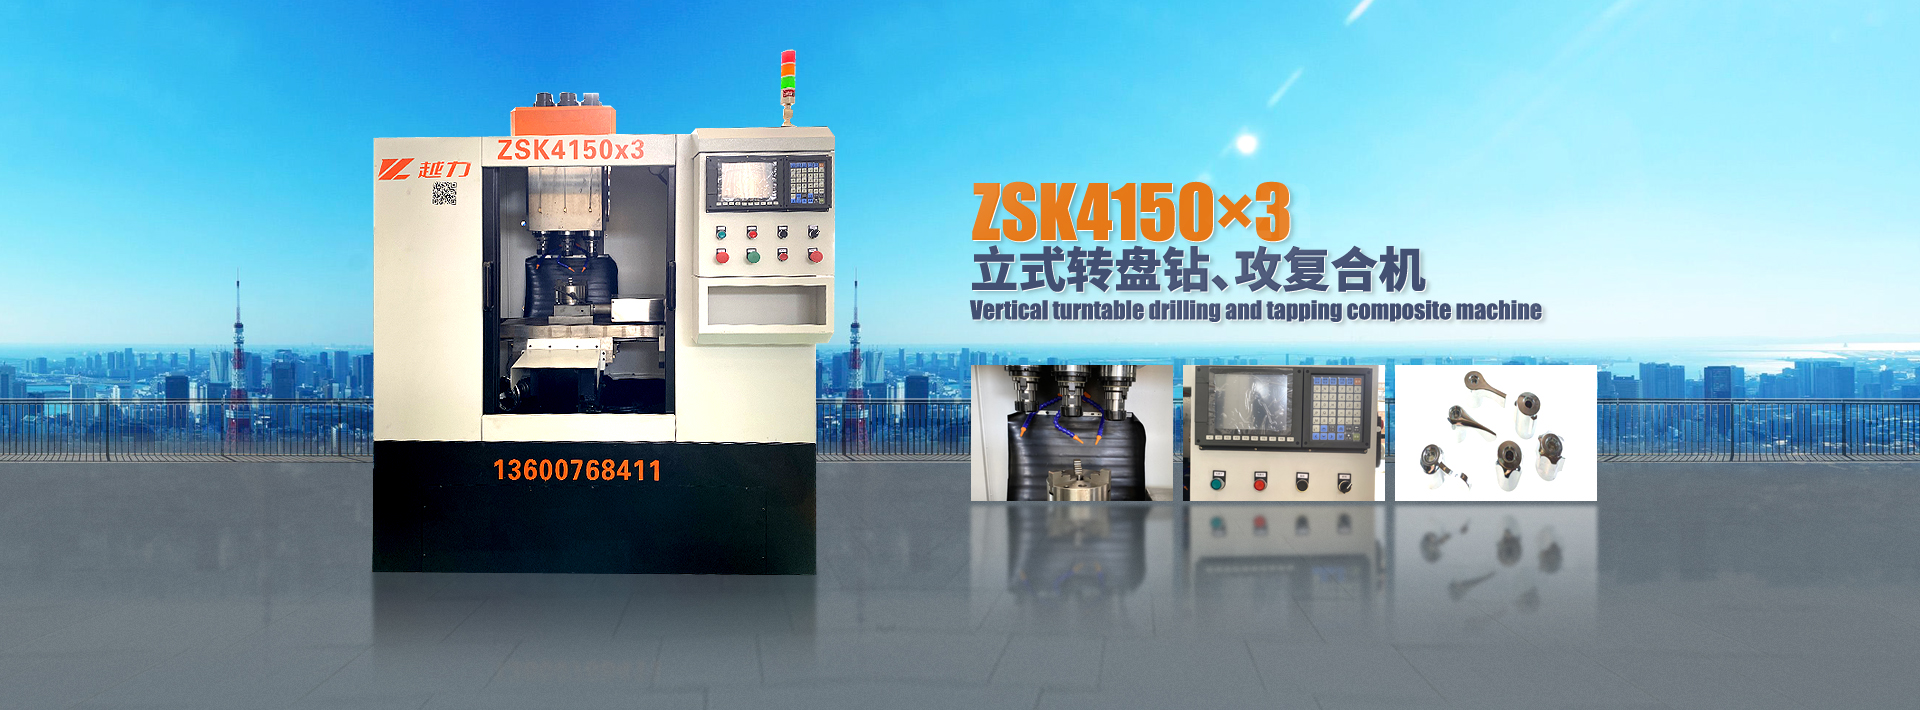 Vertical dual-axis drilling and milling machining center